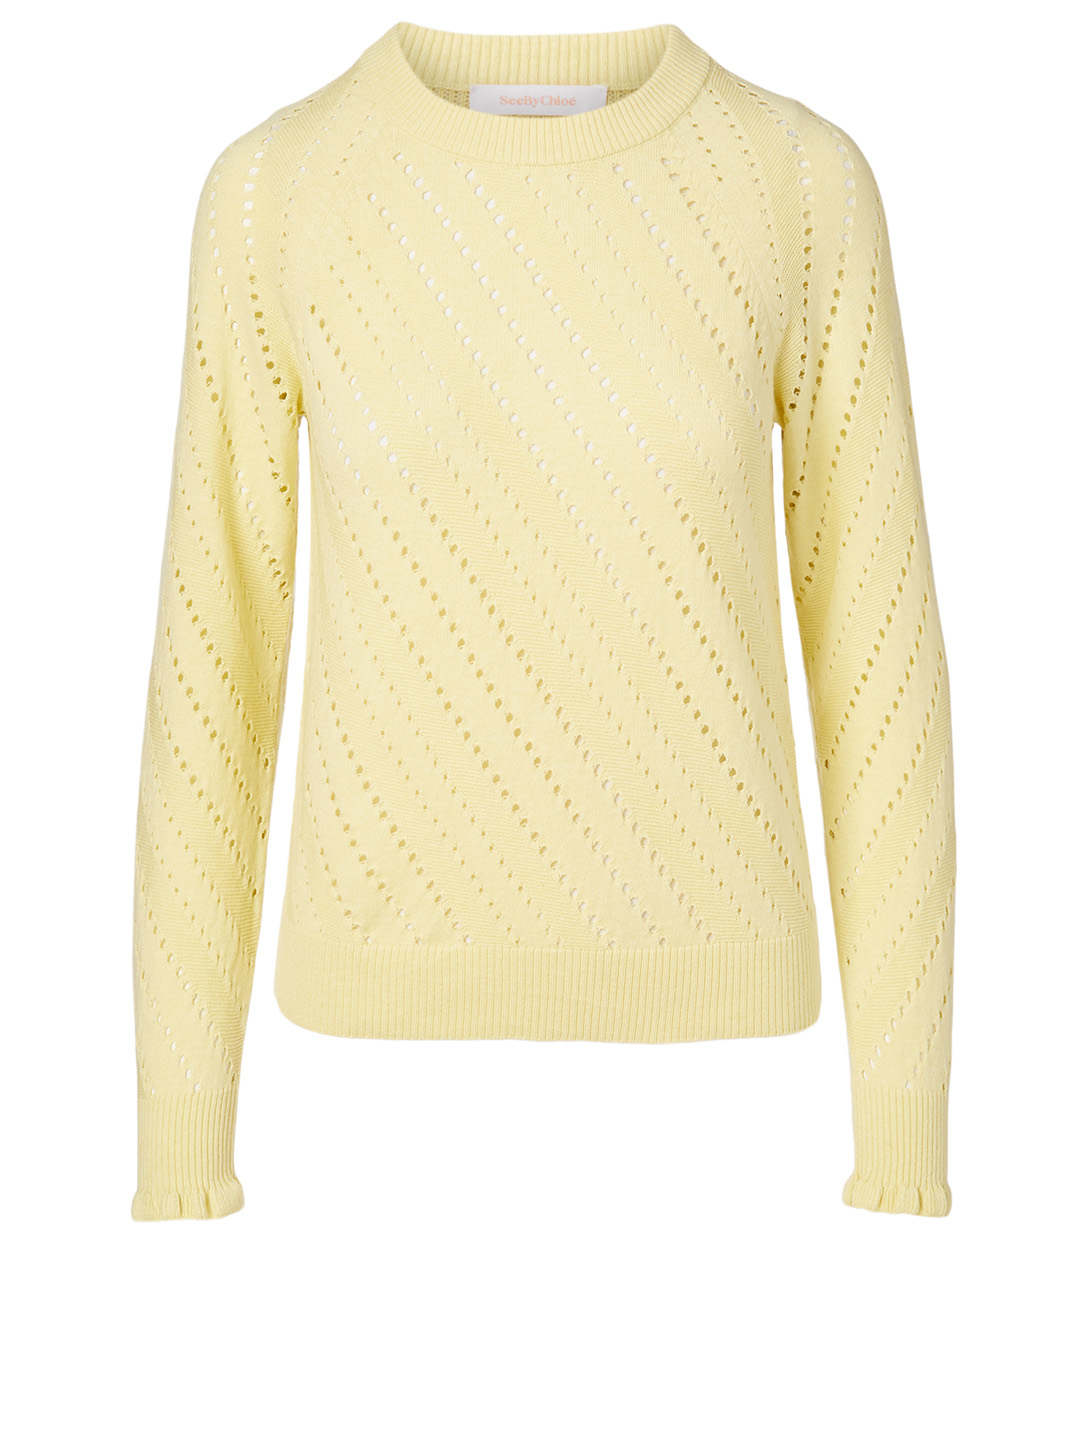 SEE BY CHLOÉ Cotton And Wool Sweater Women's Green